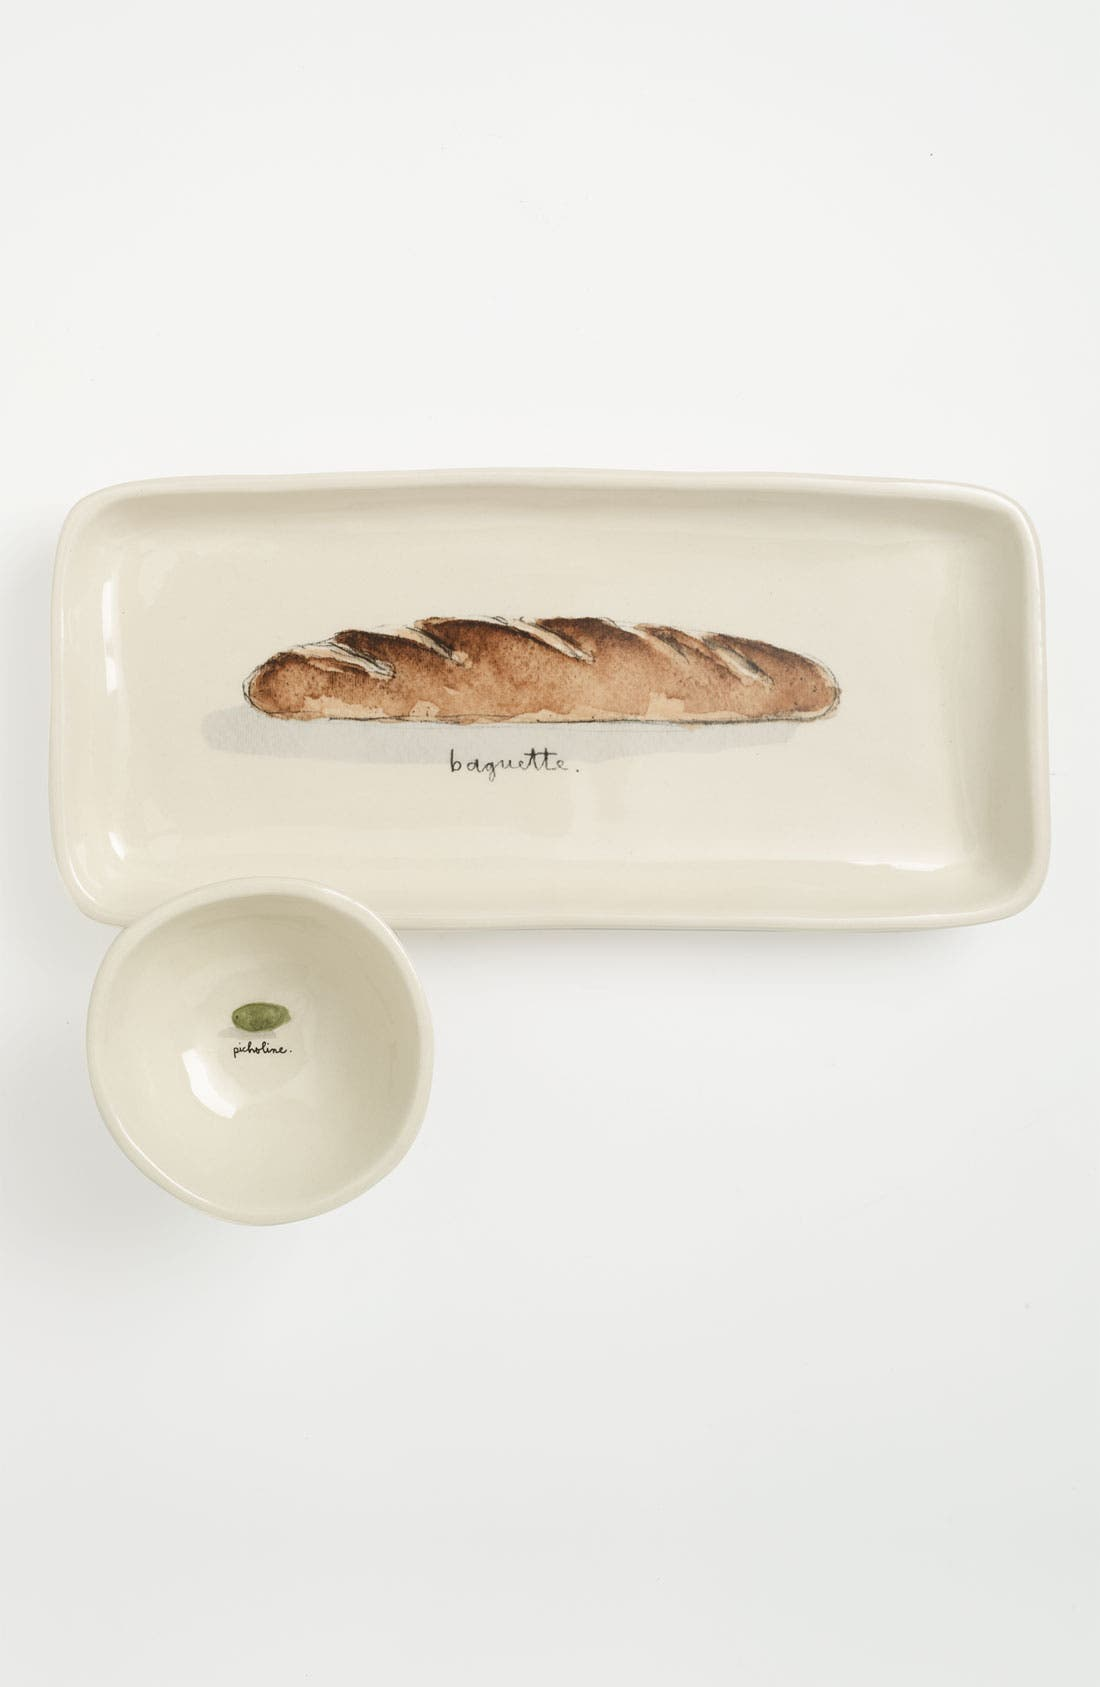 Main Image - Rae Dunn by Magenta Baguette Tray & Olive Bowl